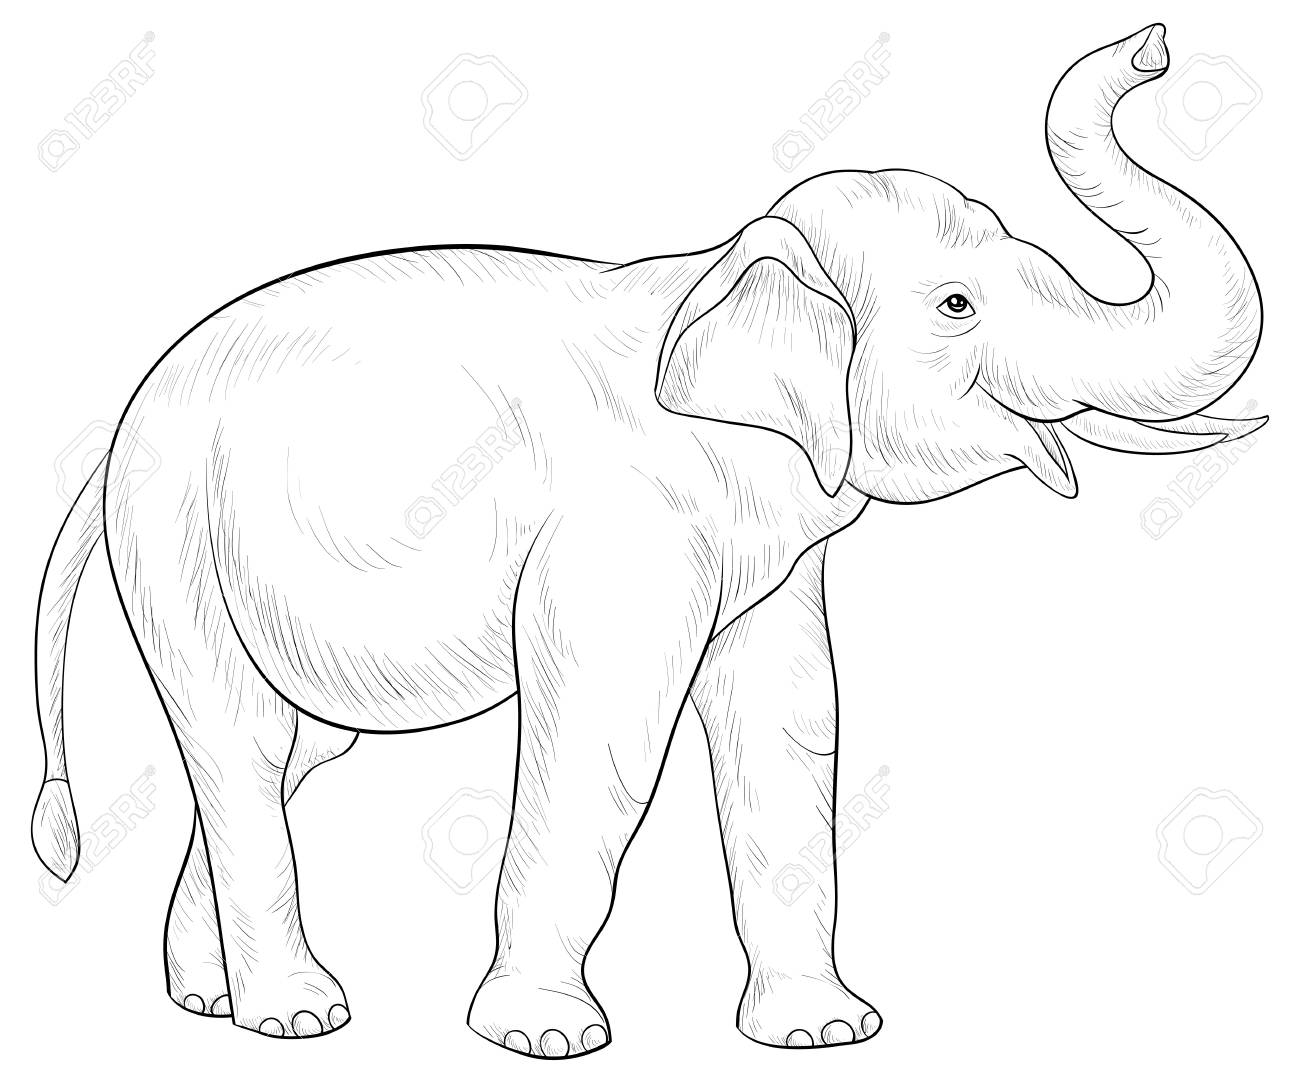 A cute elephant image for adults.Line art style illustration for relaxing activity.Poster design for print. - 114296256